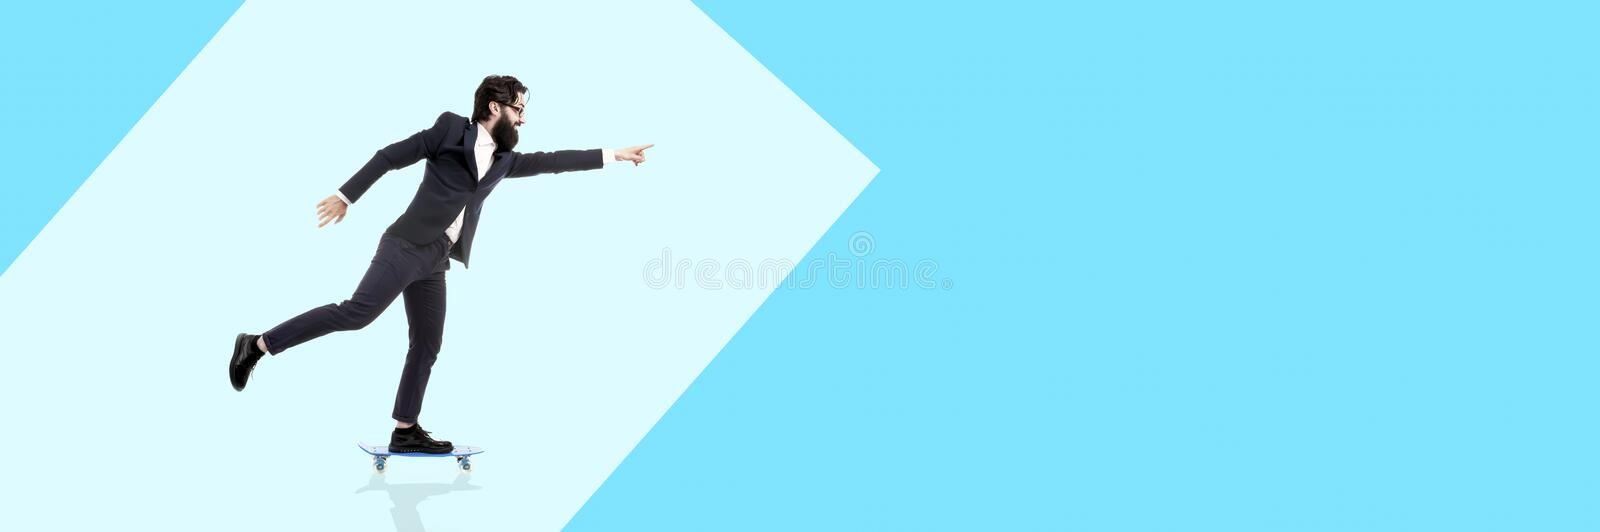 Bearded man and skateboard stock images